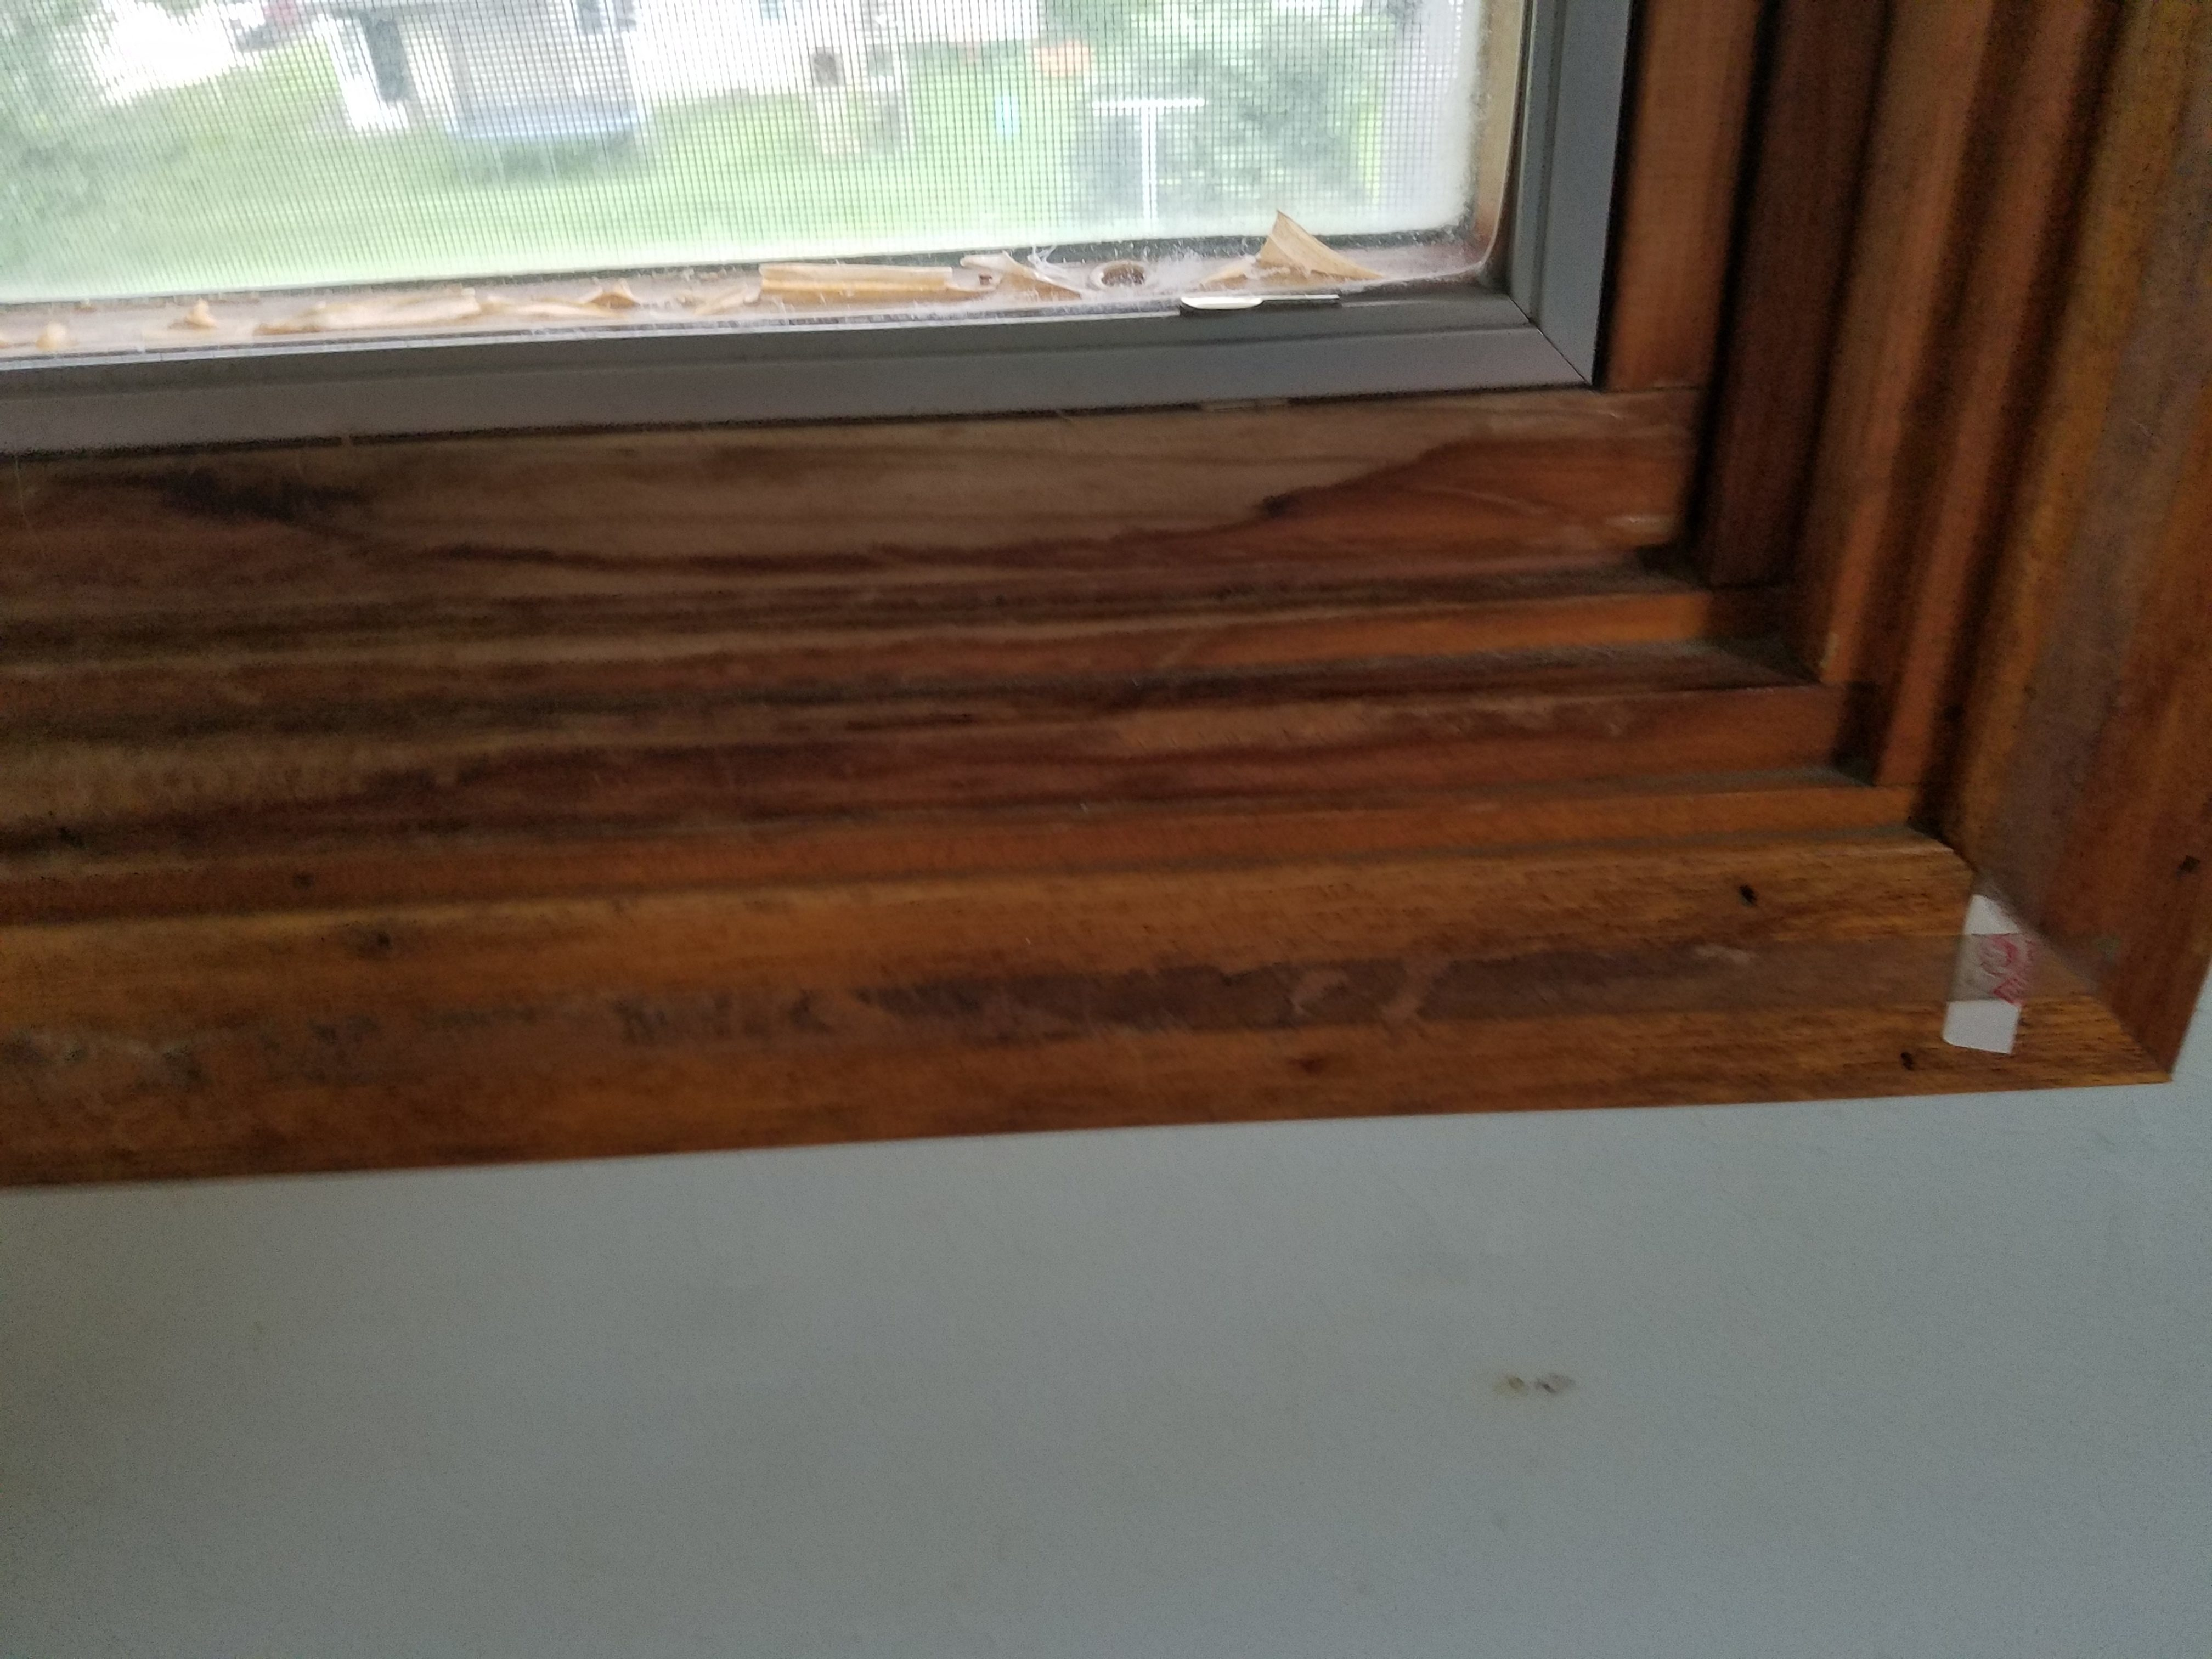 Pella replacement windows lowes perfect stunning pella exterior cheap the previous owners had purchased all new pella wood frame windows directly from the company within years they were leaking and finish was flaking off geenschuldenfo Gallery